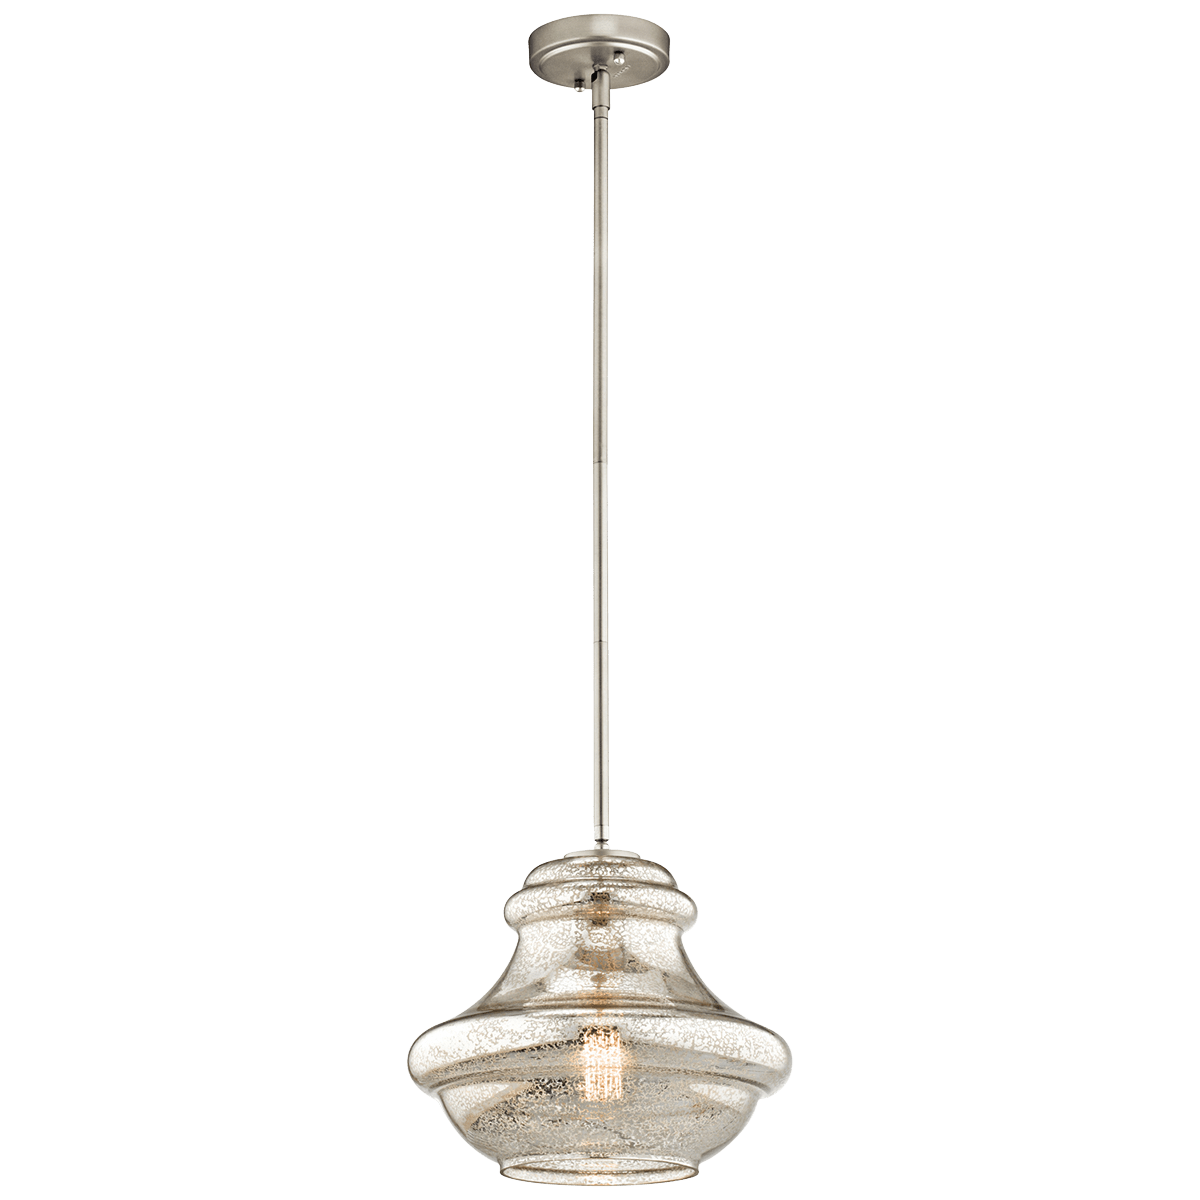 Pendant Lighting Brushed Nickel Mercury Glass Shade Kichler Everly 1 Light Pendant